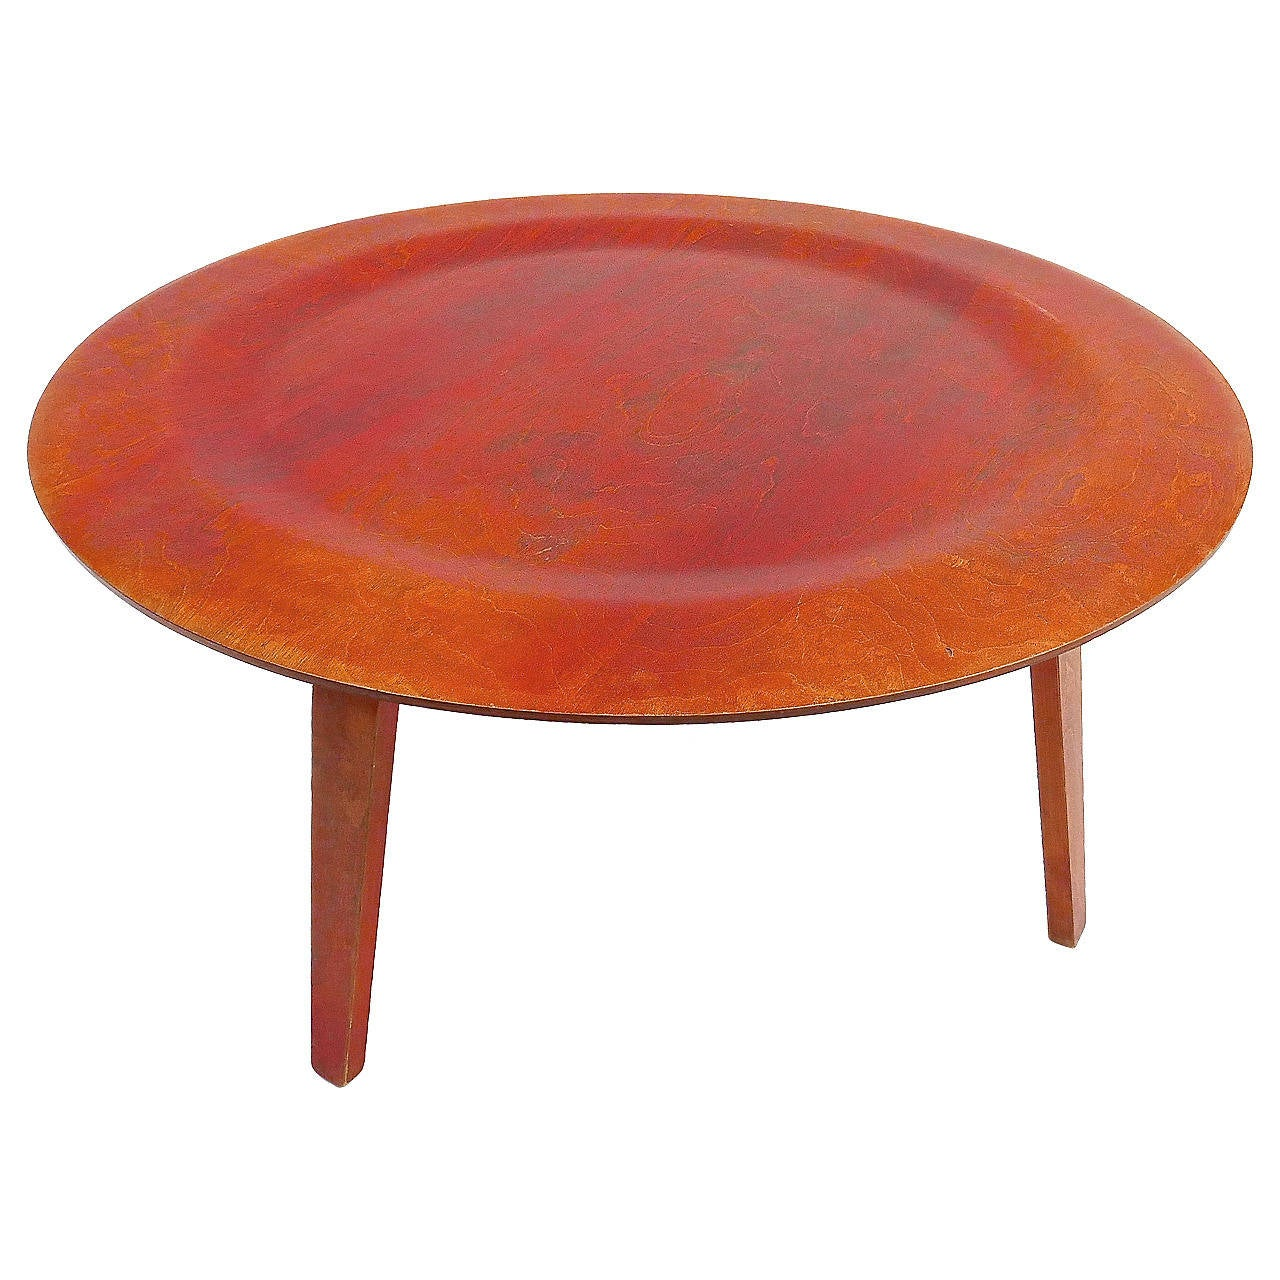 Dish Chair Charles And Ray Eames Dish Table At 1stdibs